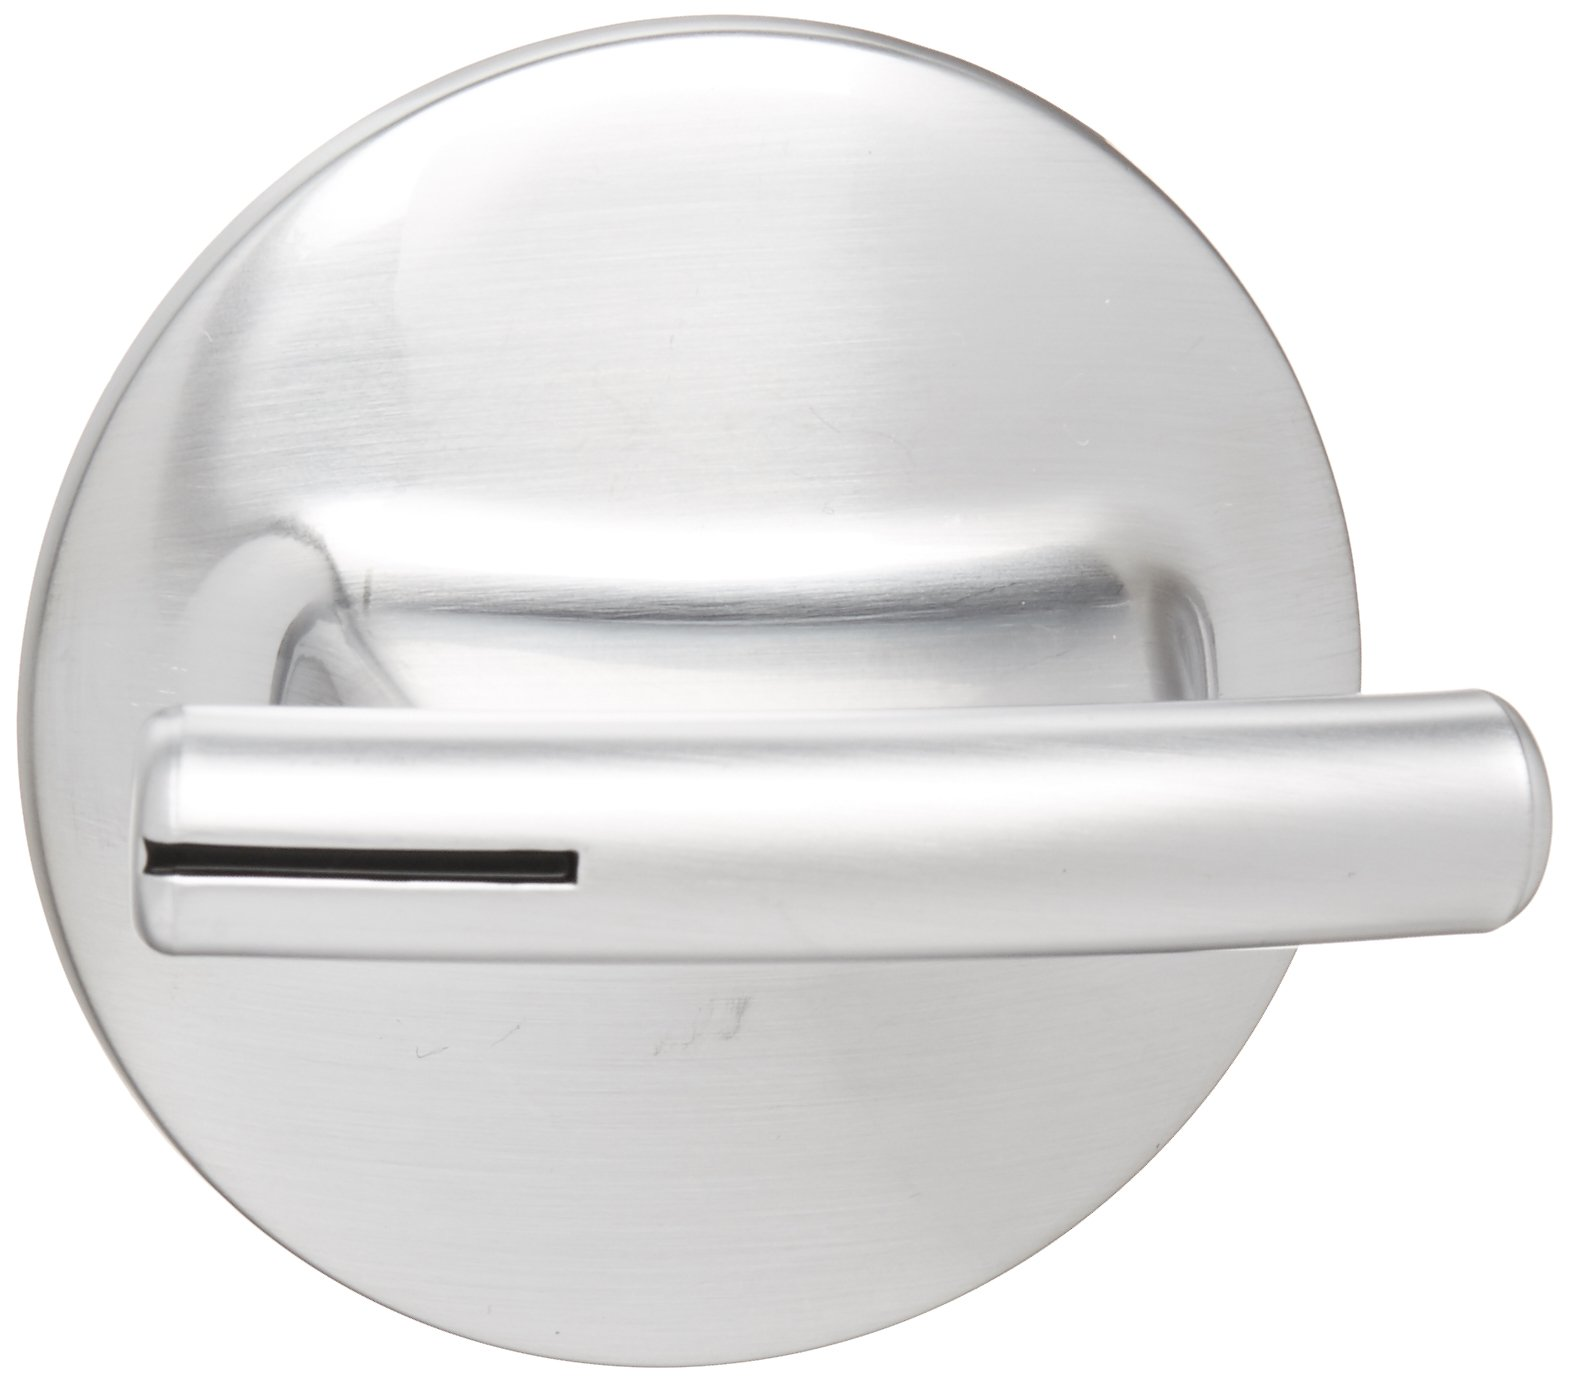 Jenn-Air Cooktop Knob 74010839 NEW OEM Brushed Finish